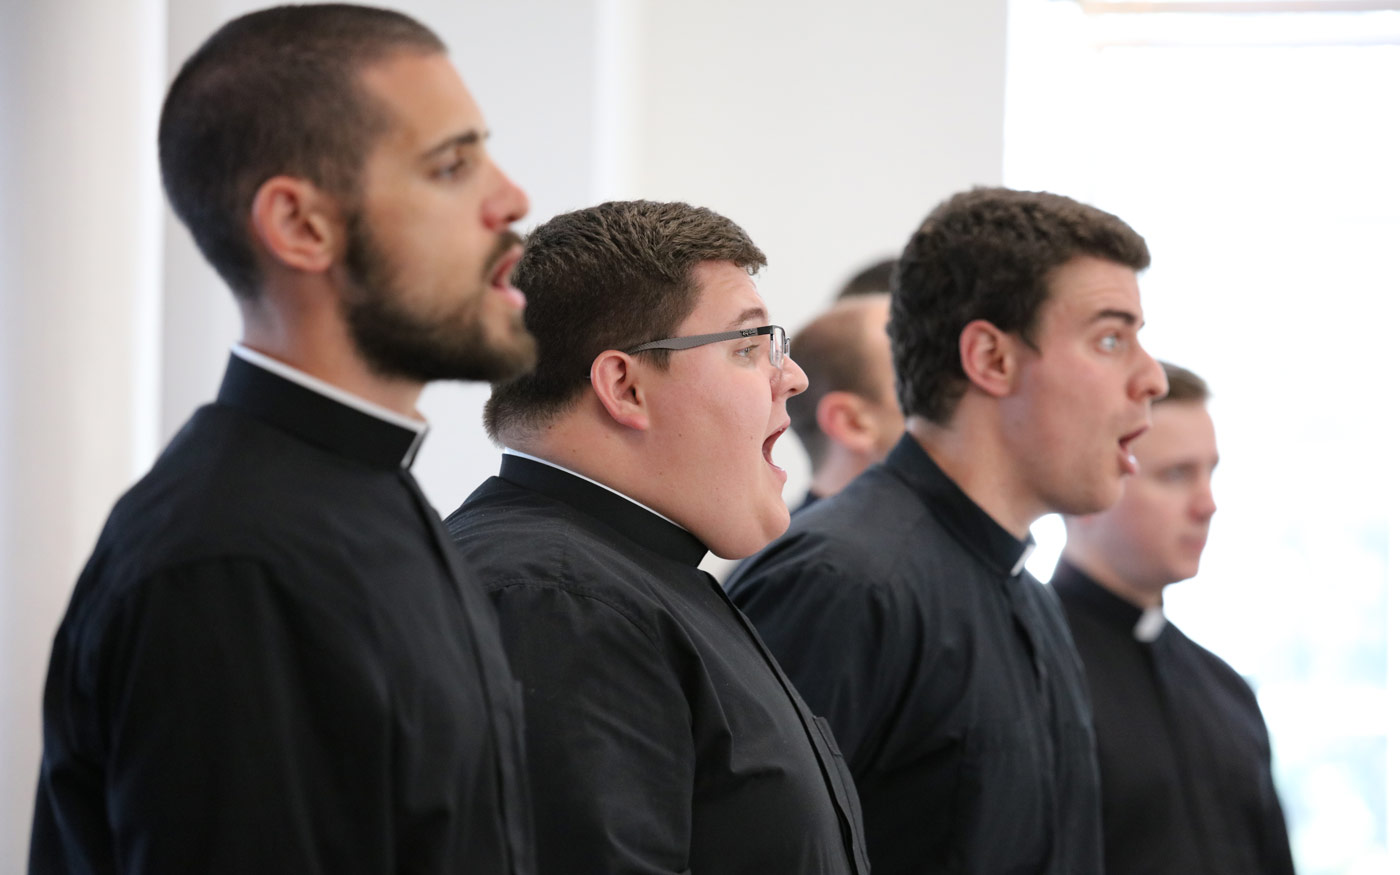 Seminarians sing with the Schola